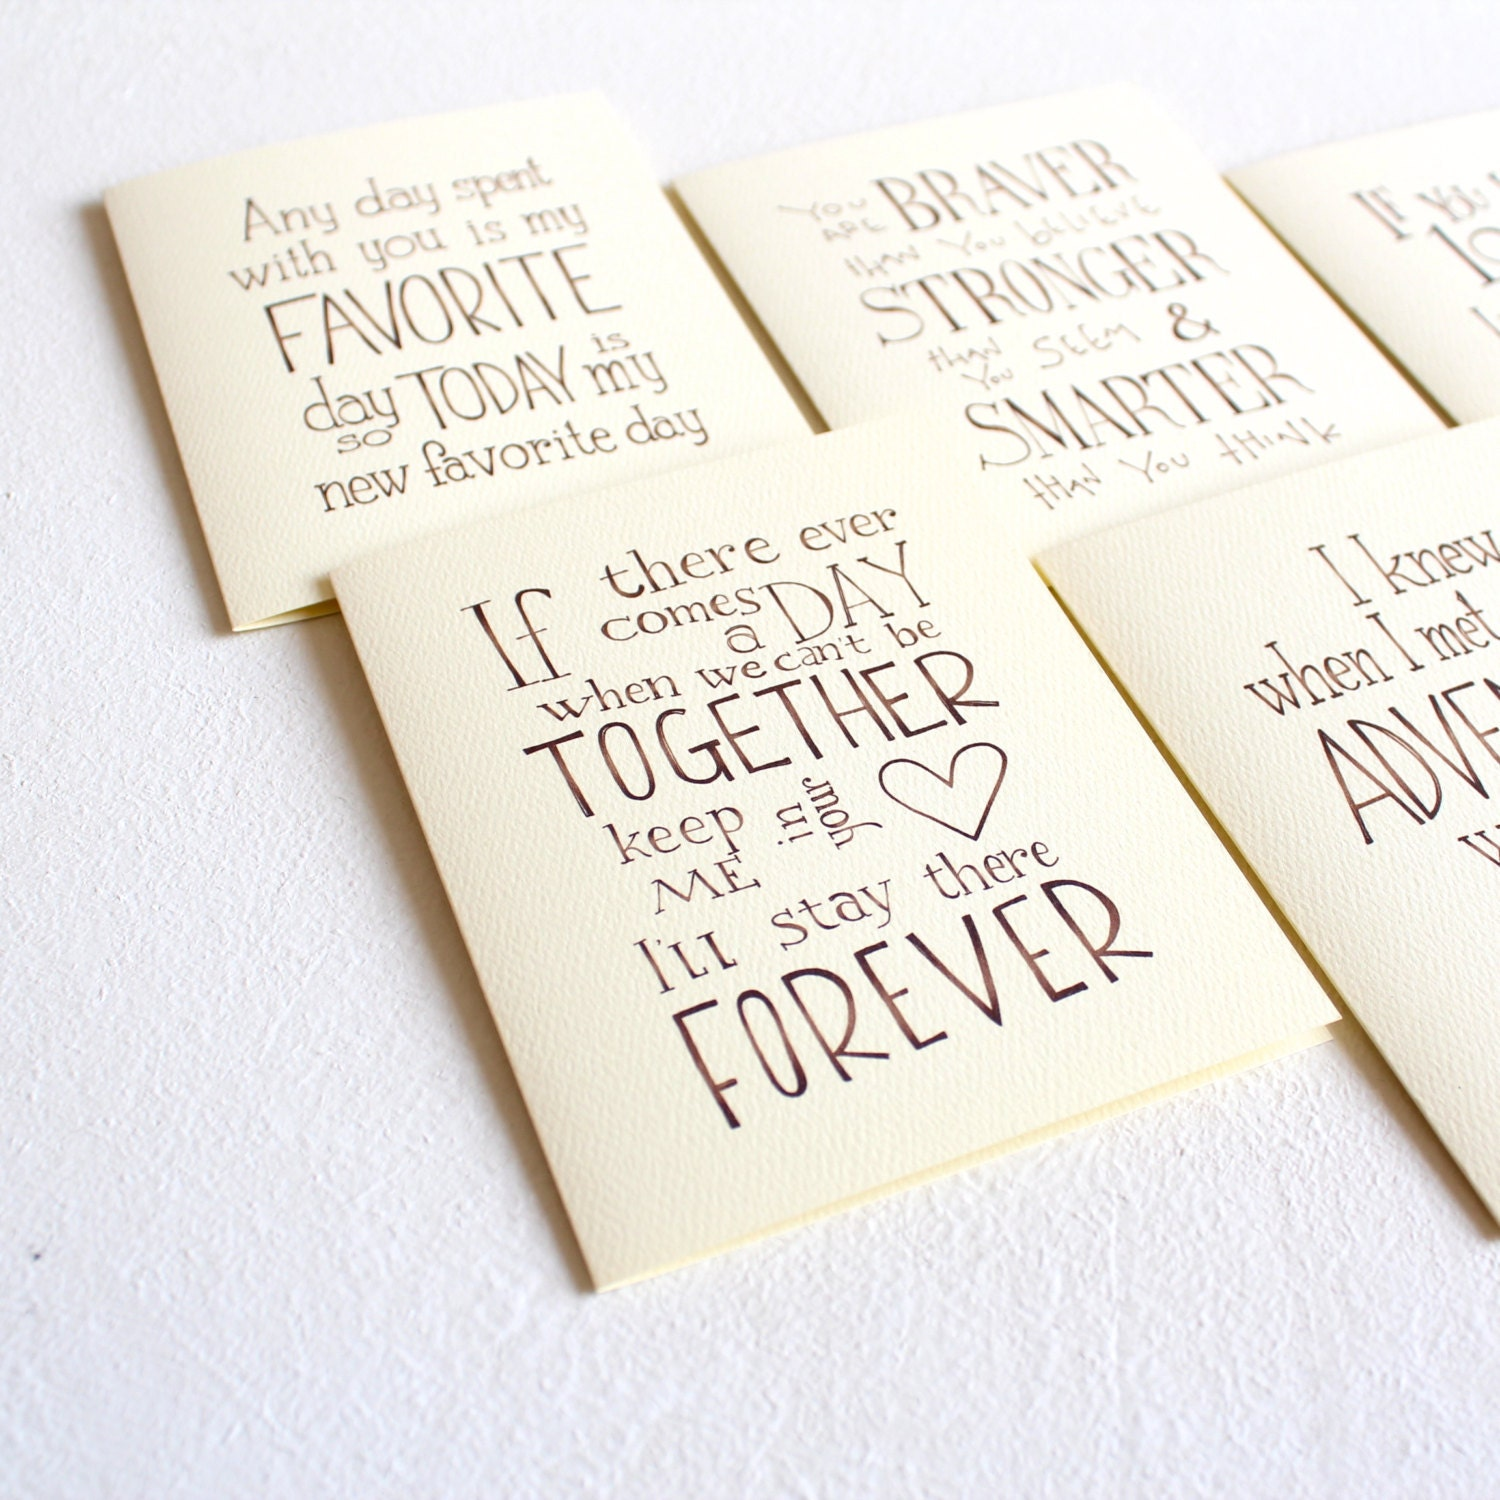 Pooh Quotes About Friendship Set Of 5 Winnie The Pooh Quote Cards Handmade Cards Set Love